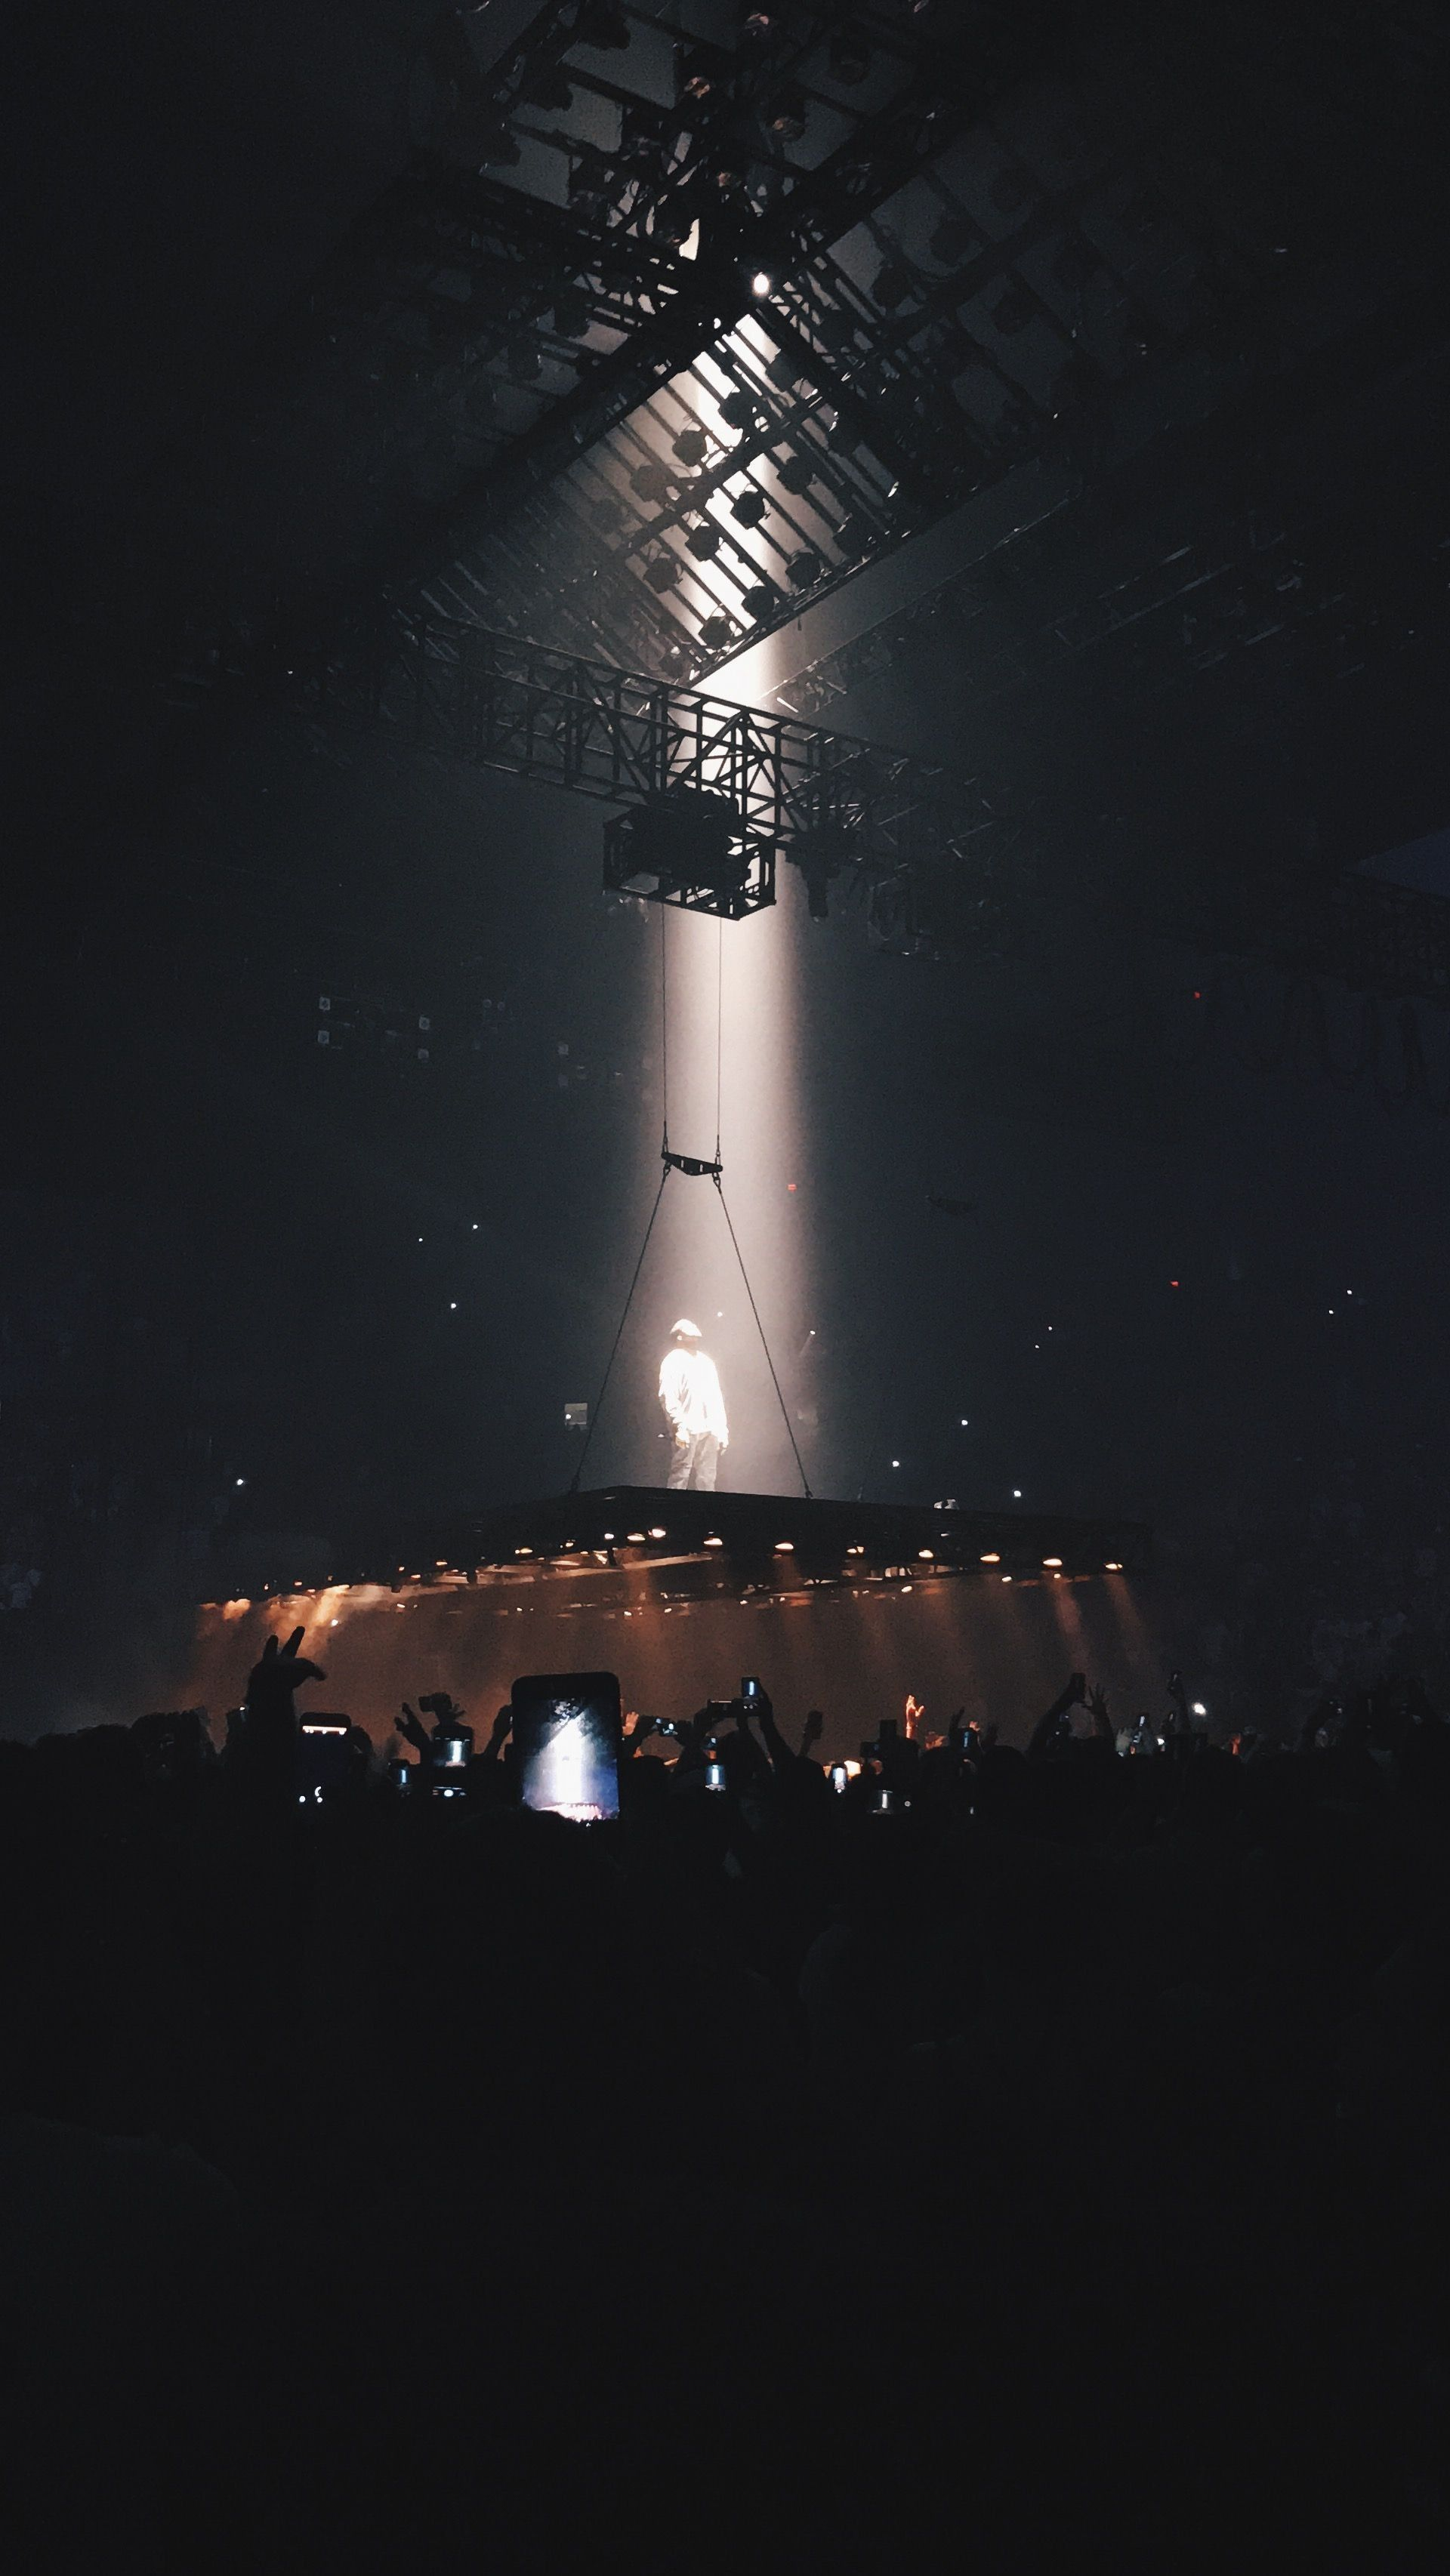 Luxury Kanye West iPhone Wallpaper Check more at https